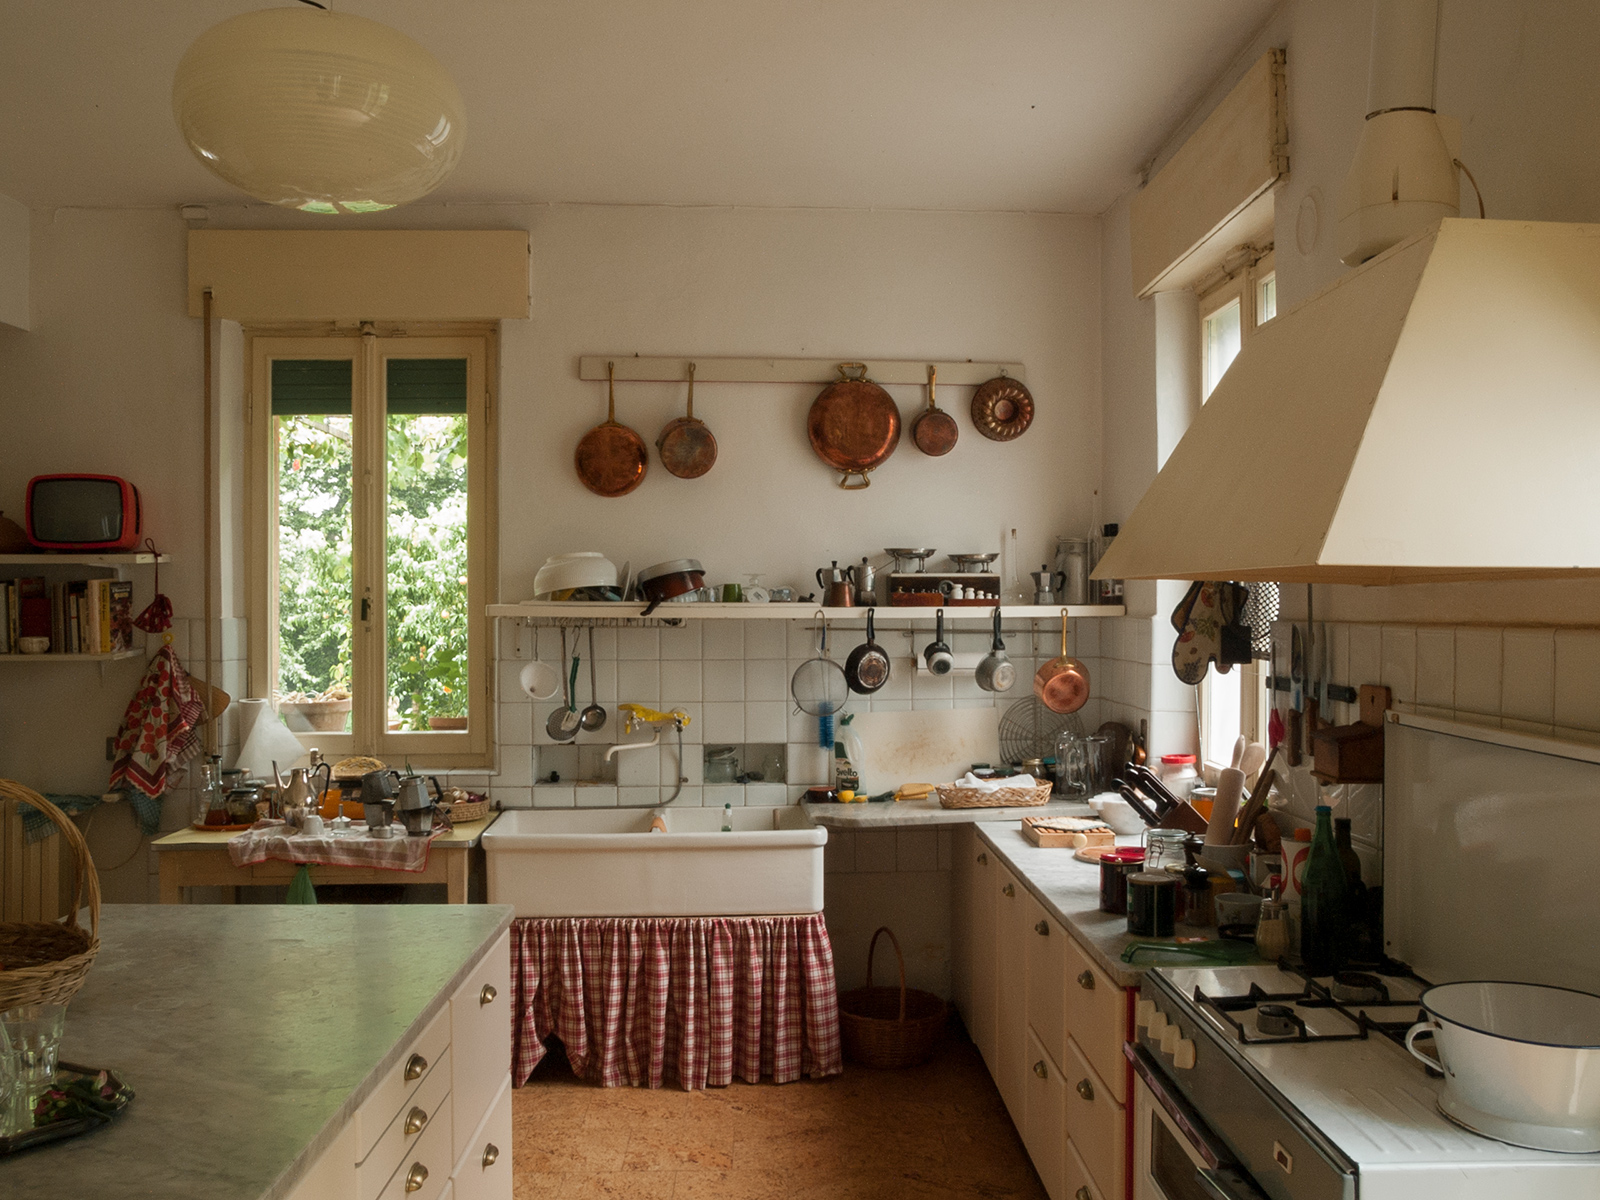 The kitchen. Photography: Giulio Ghirardi